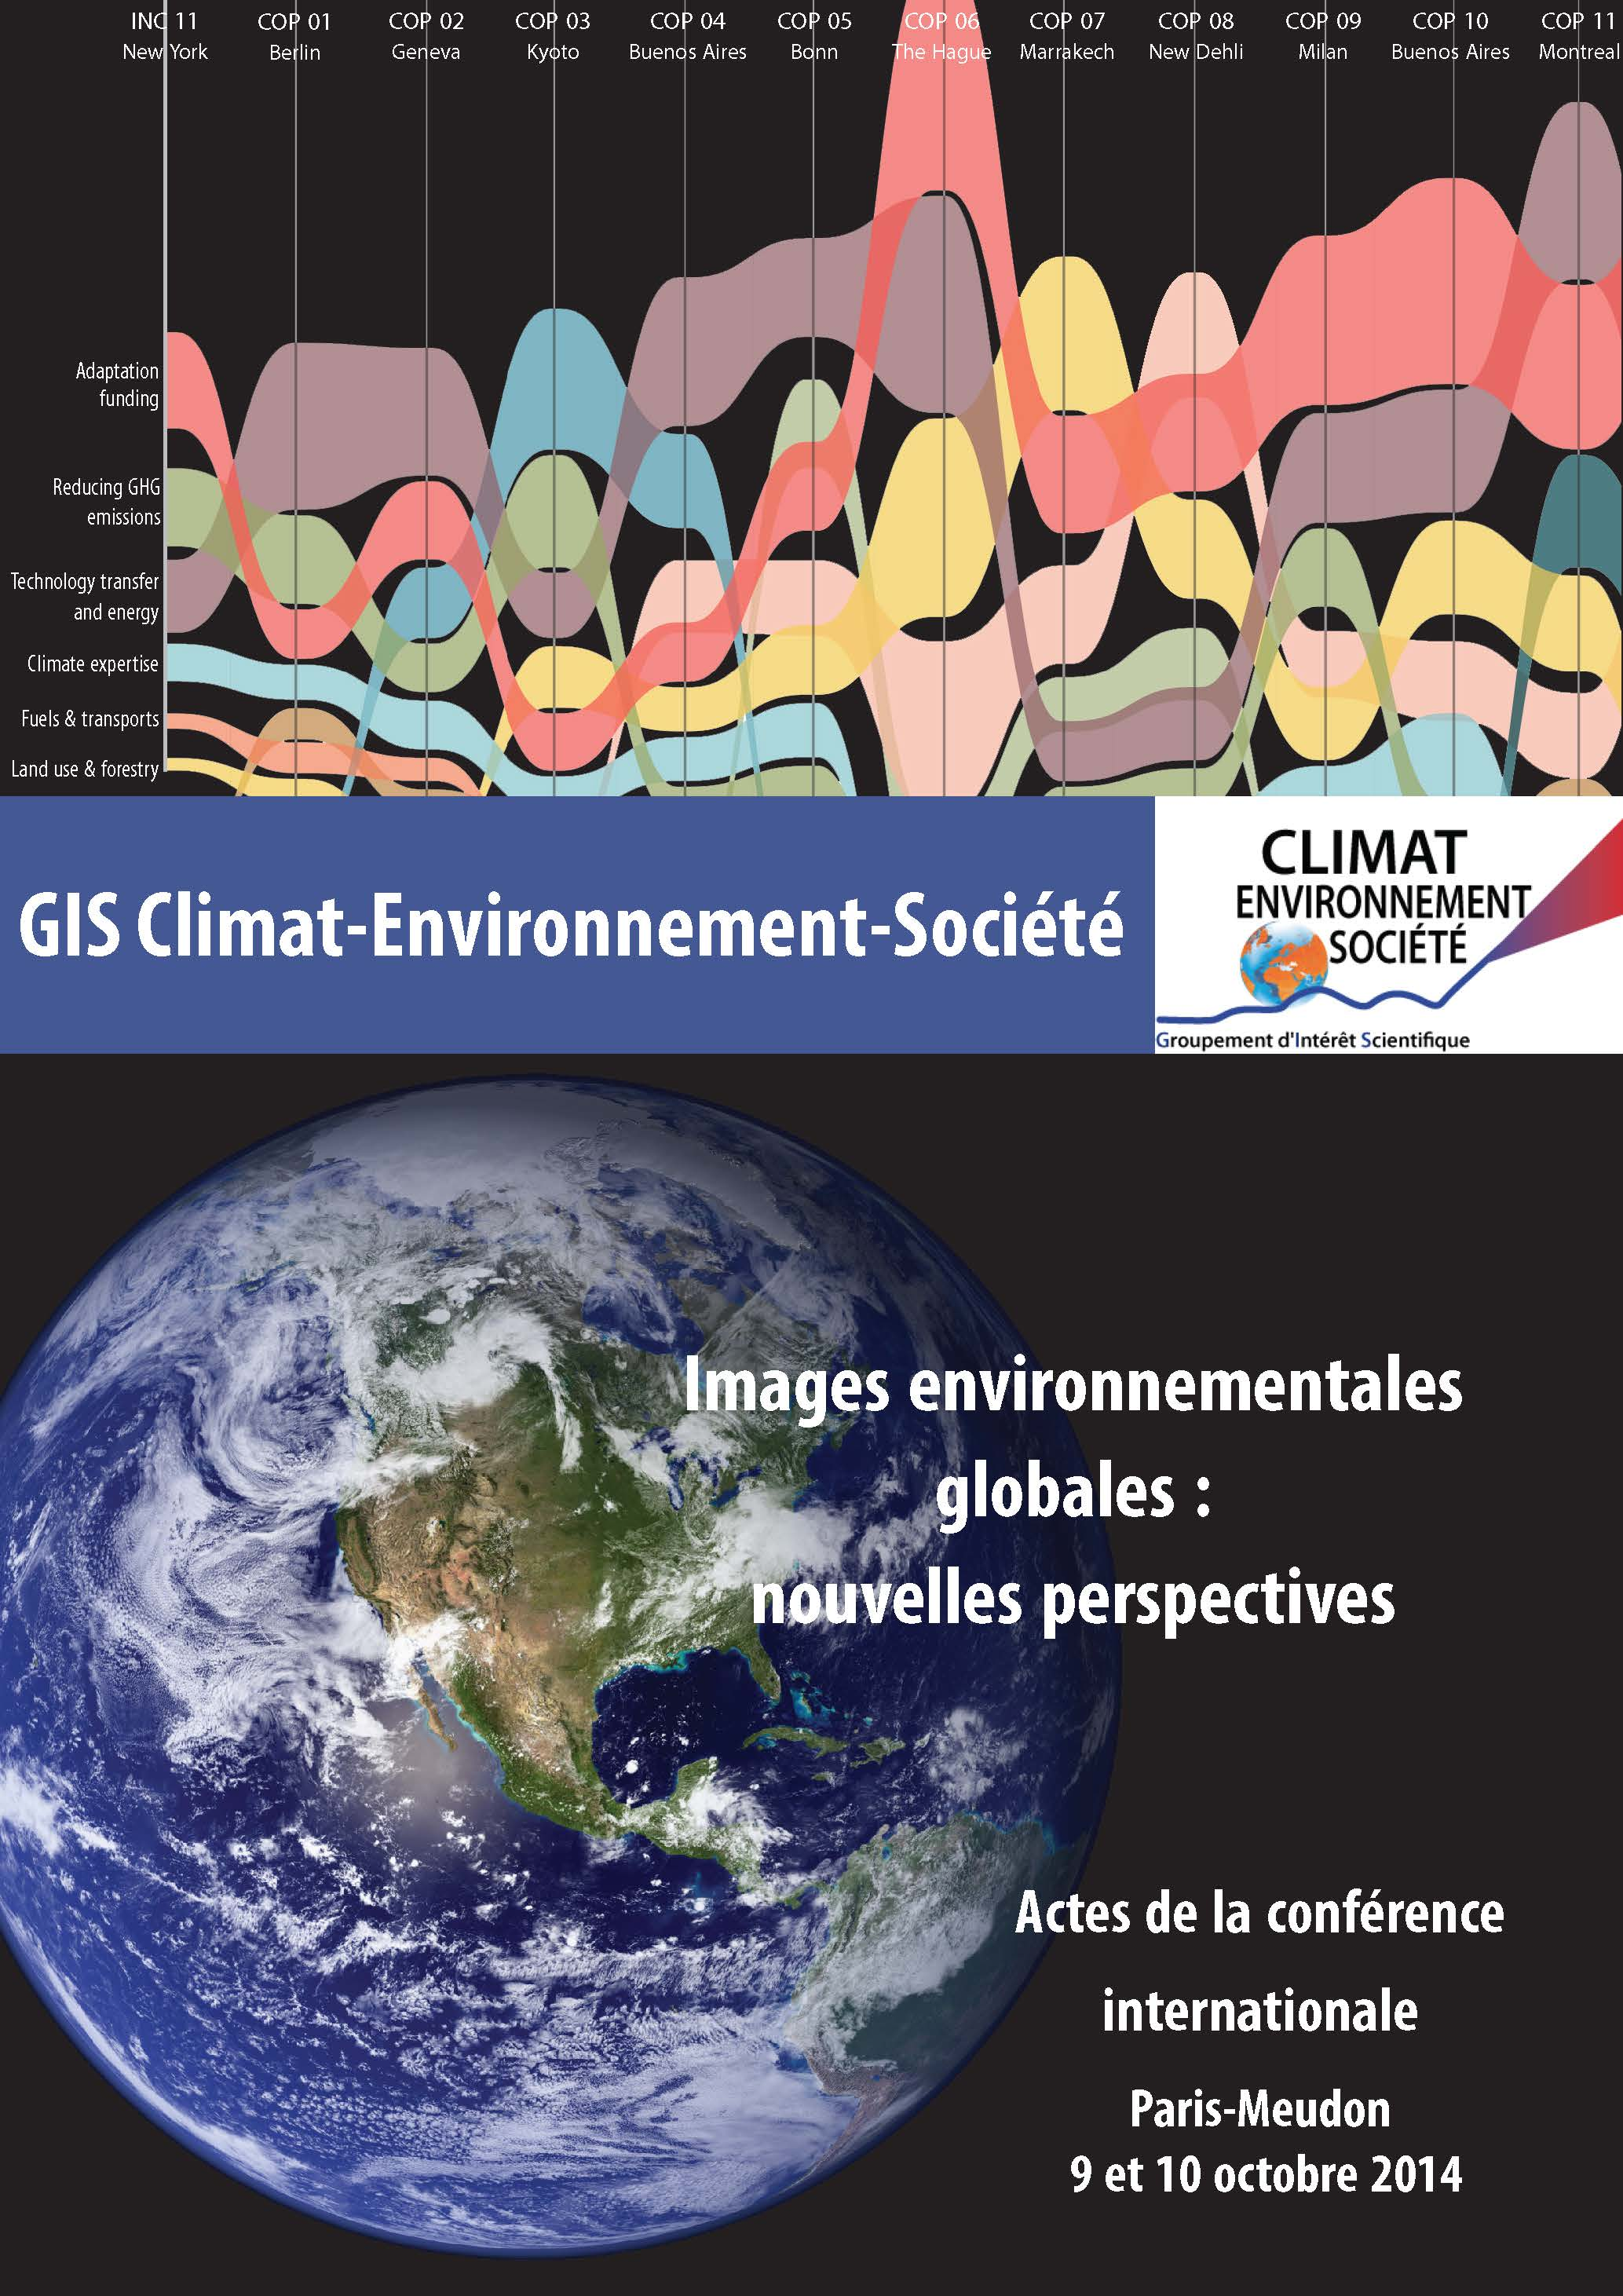 Images environnementales globales : nouvelles perspectives